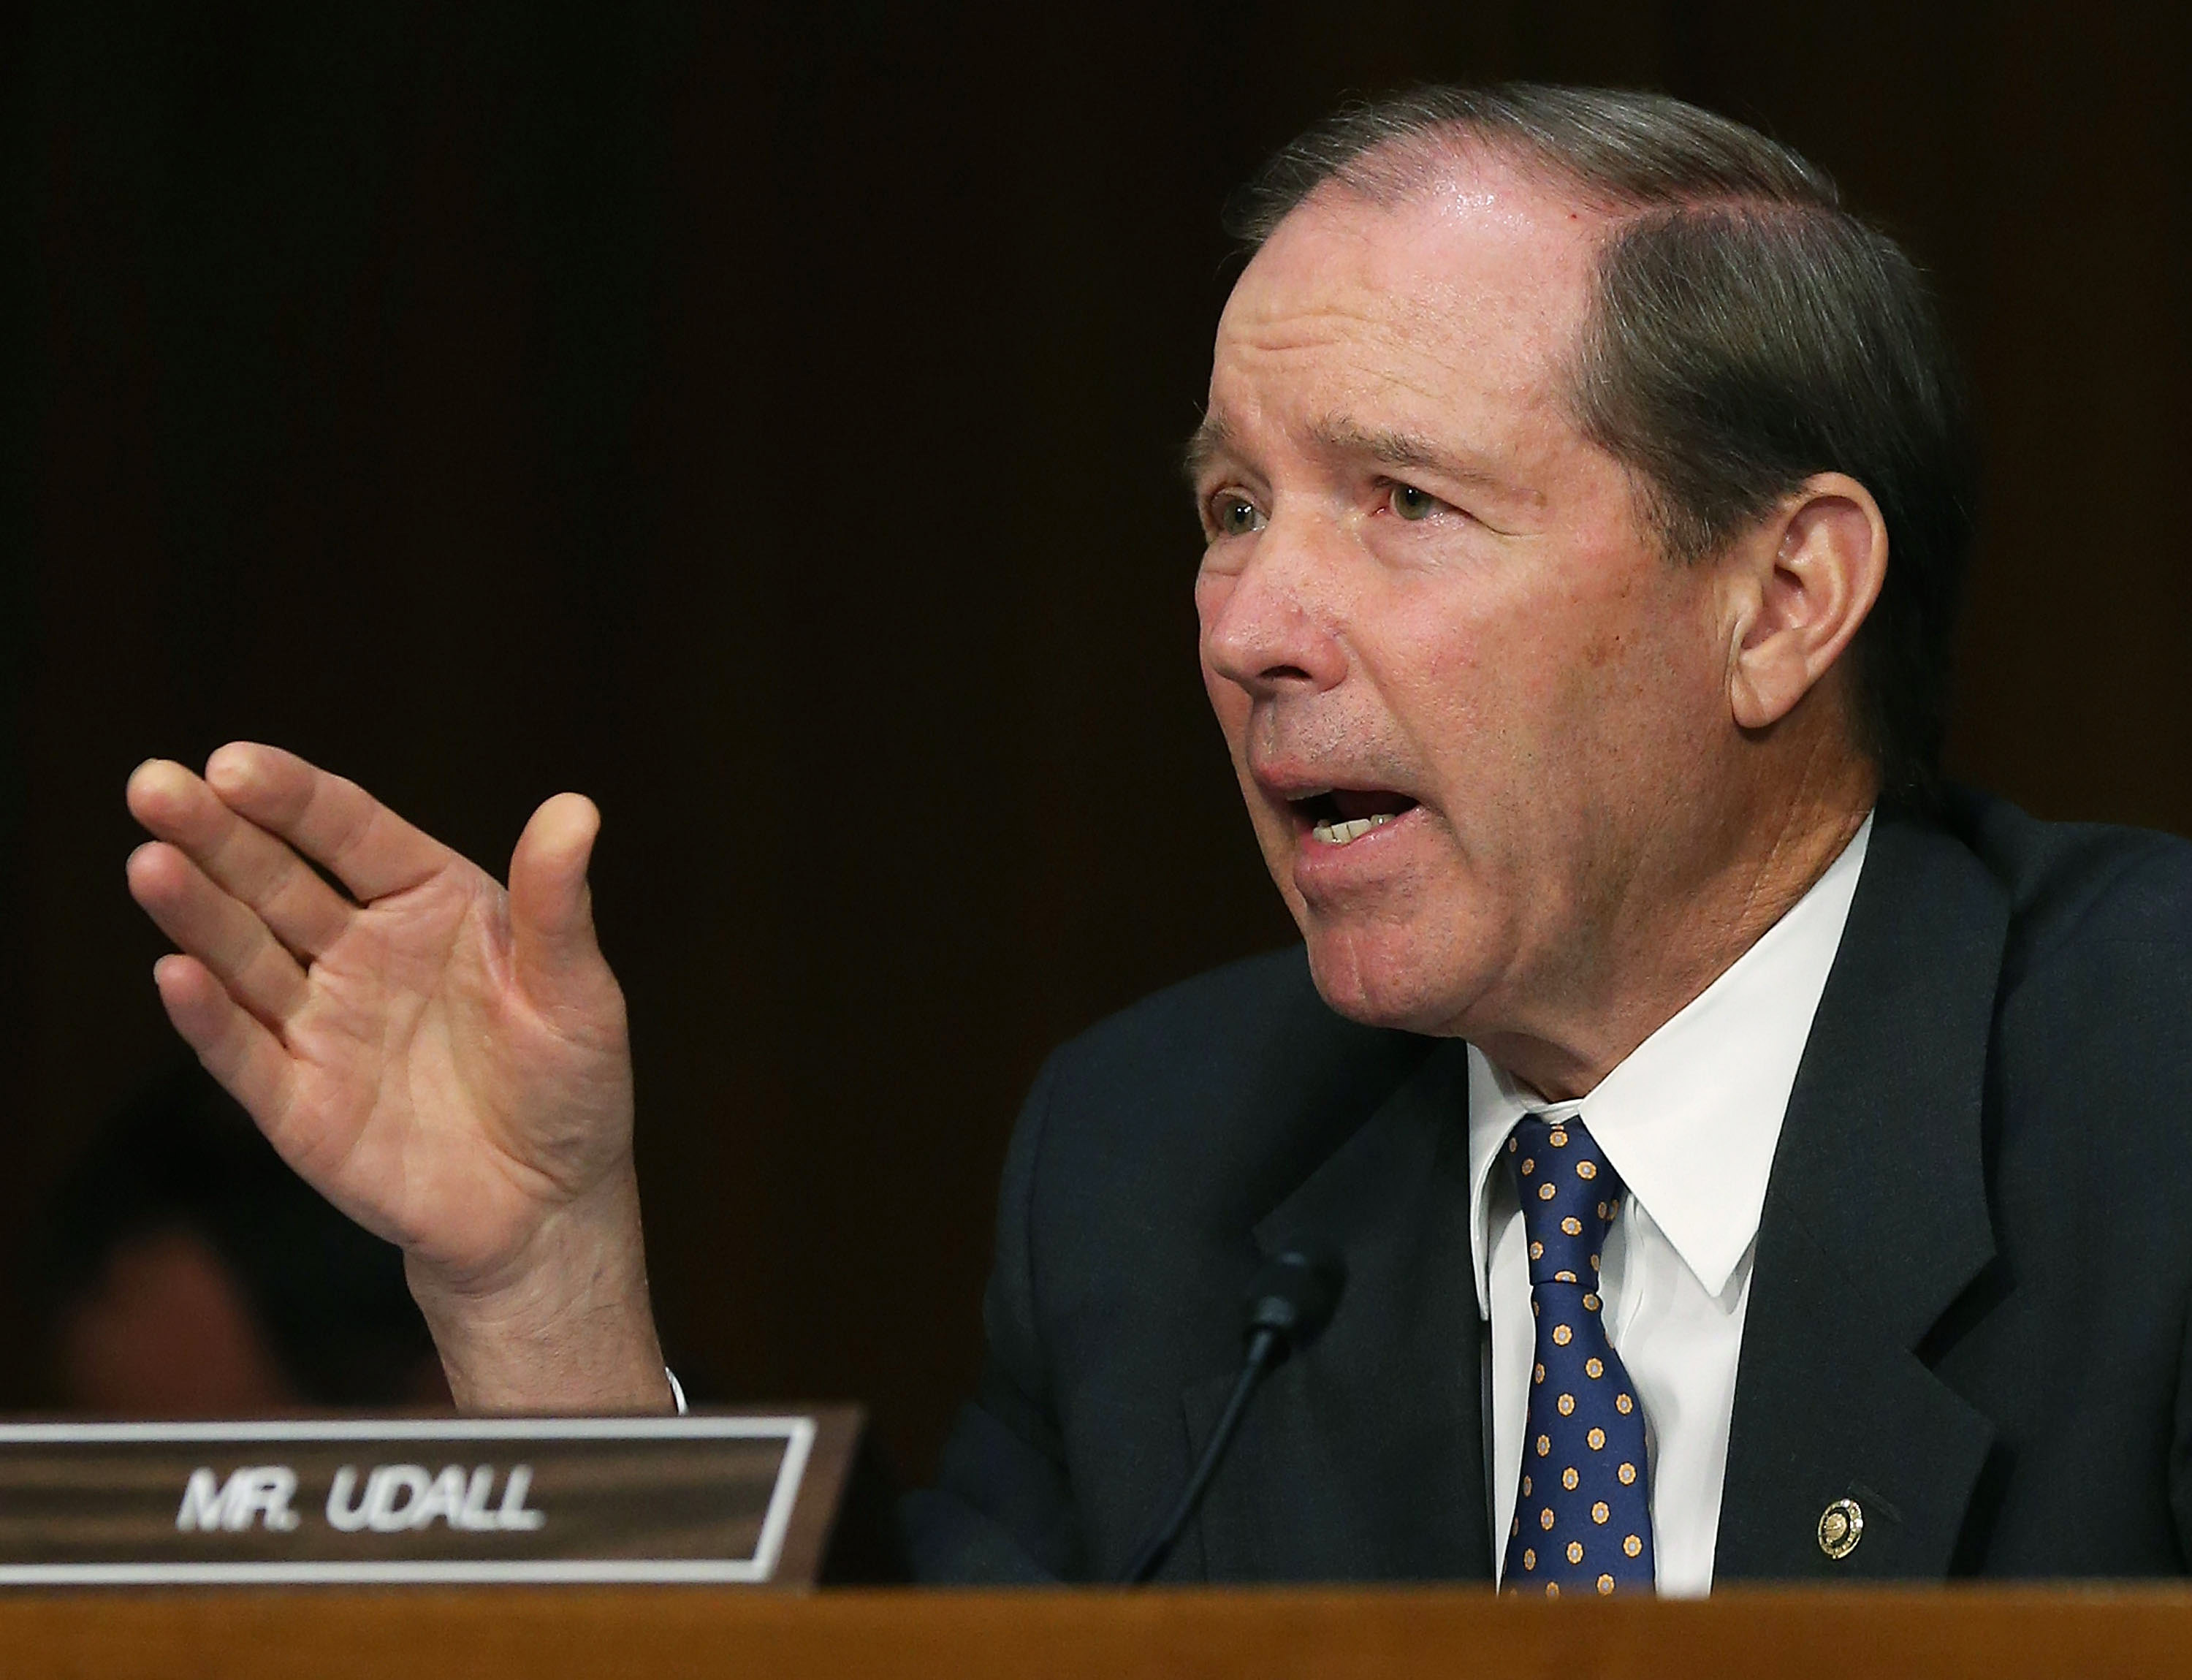 Exclusive: Sen. Tom Udall plans to force a vote to block funding for war with Iran